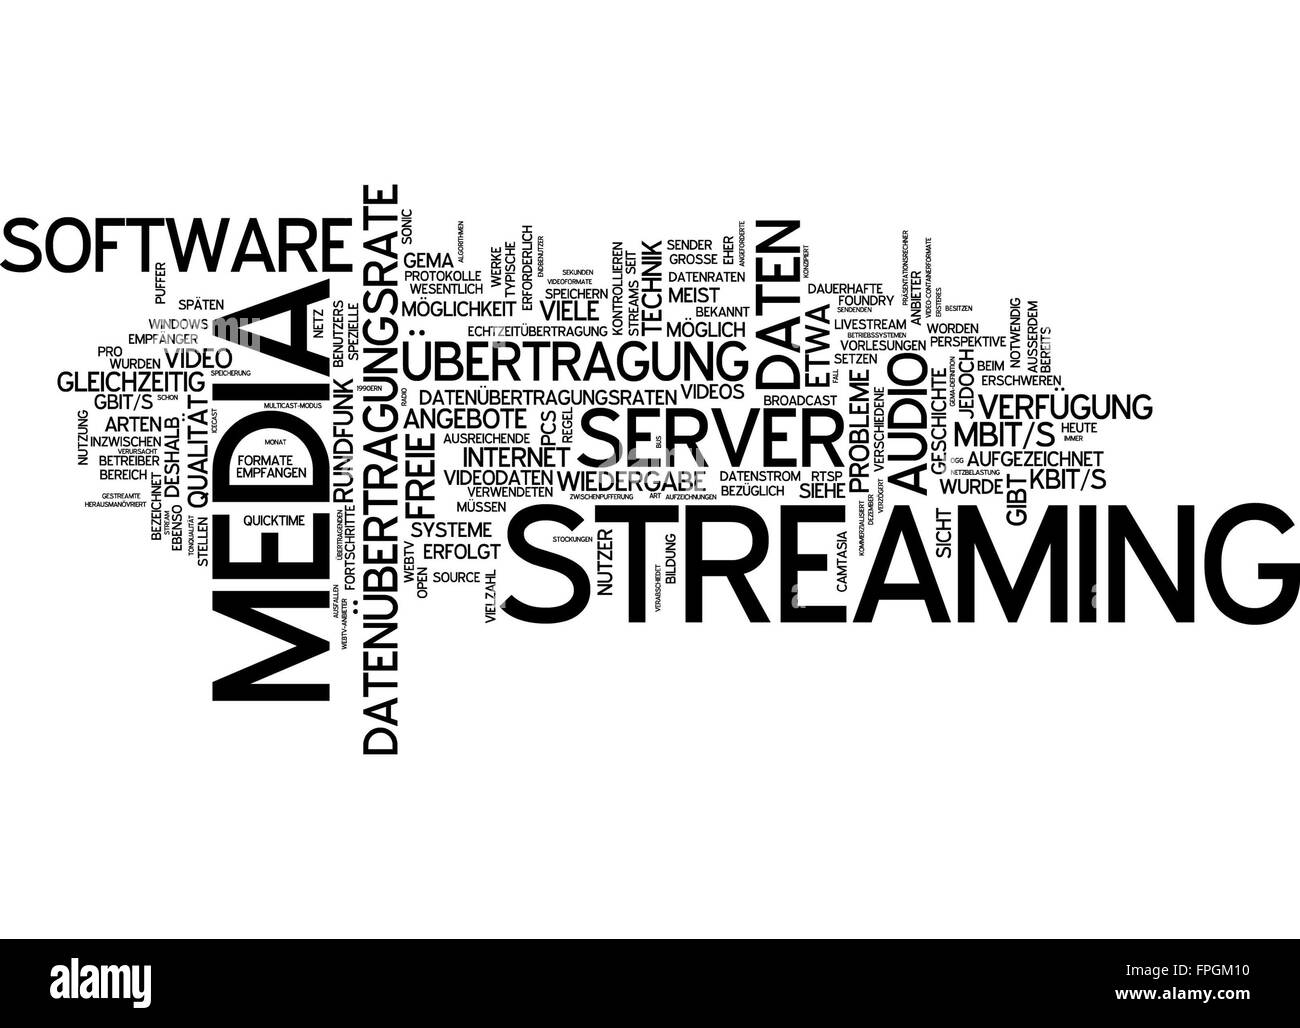 streaming media streaming media livestream - Stock Image